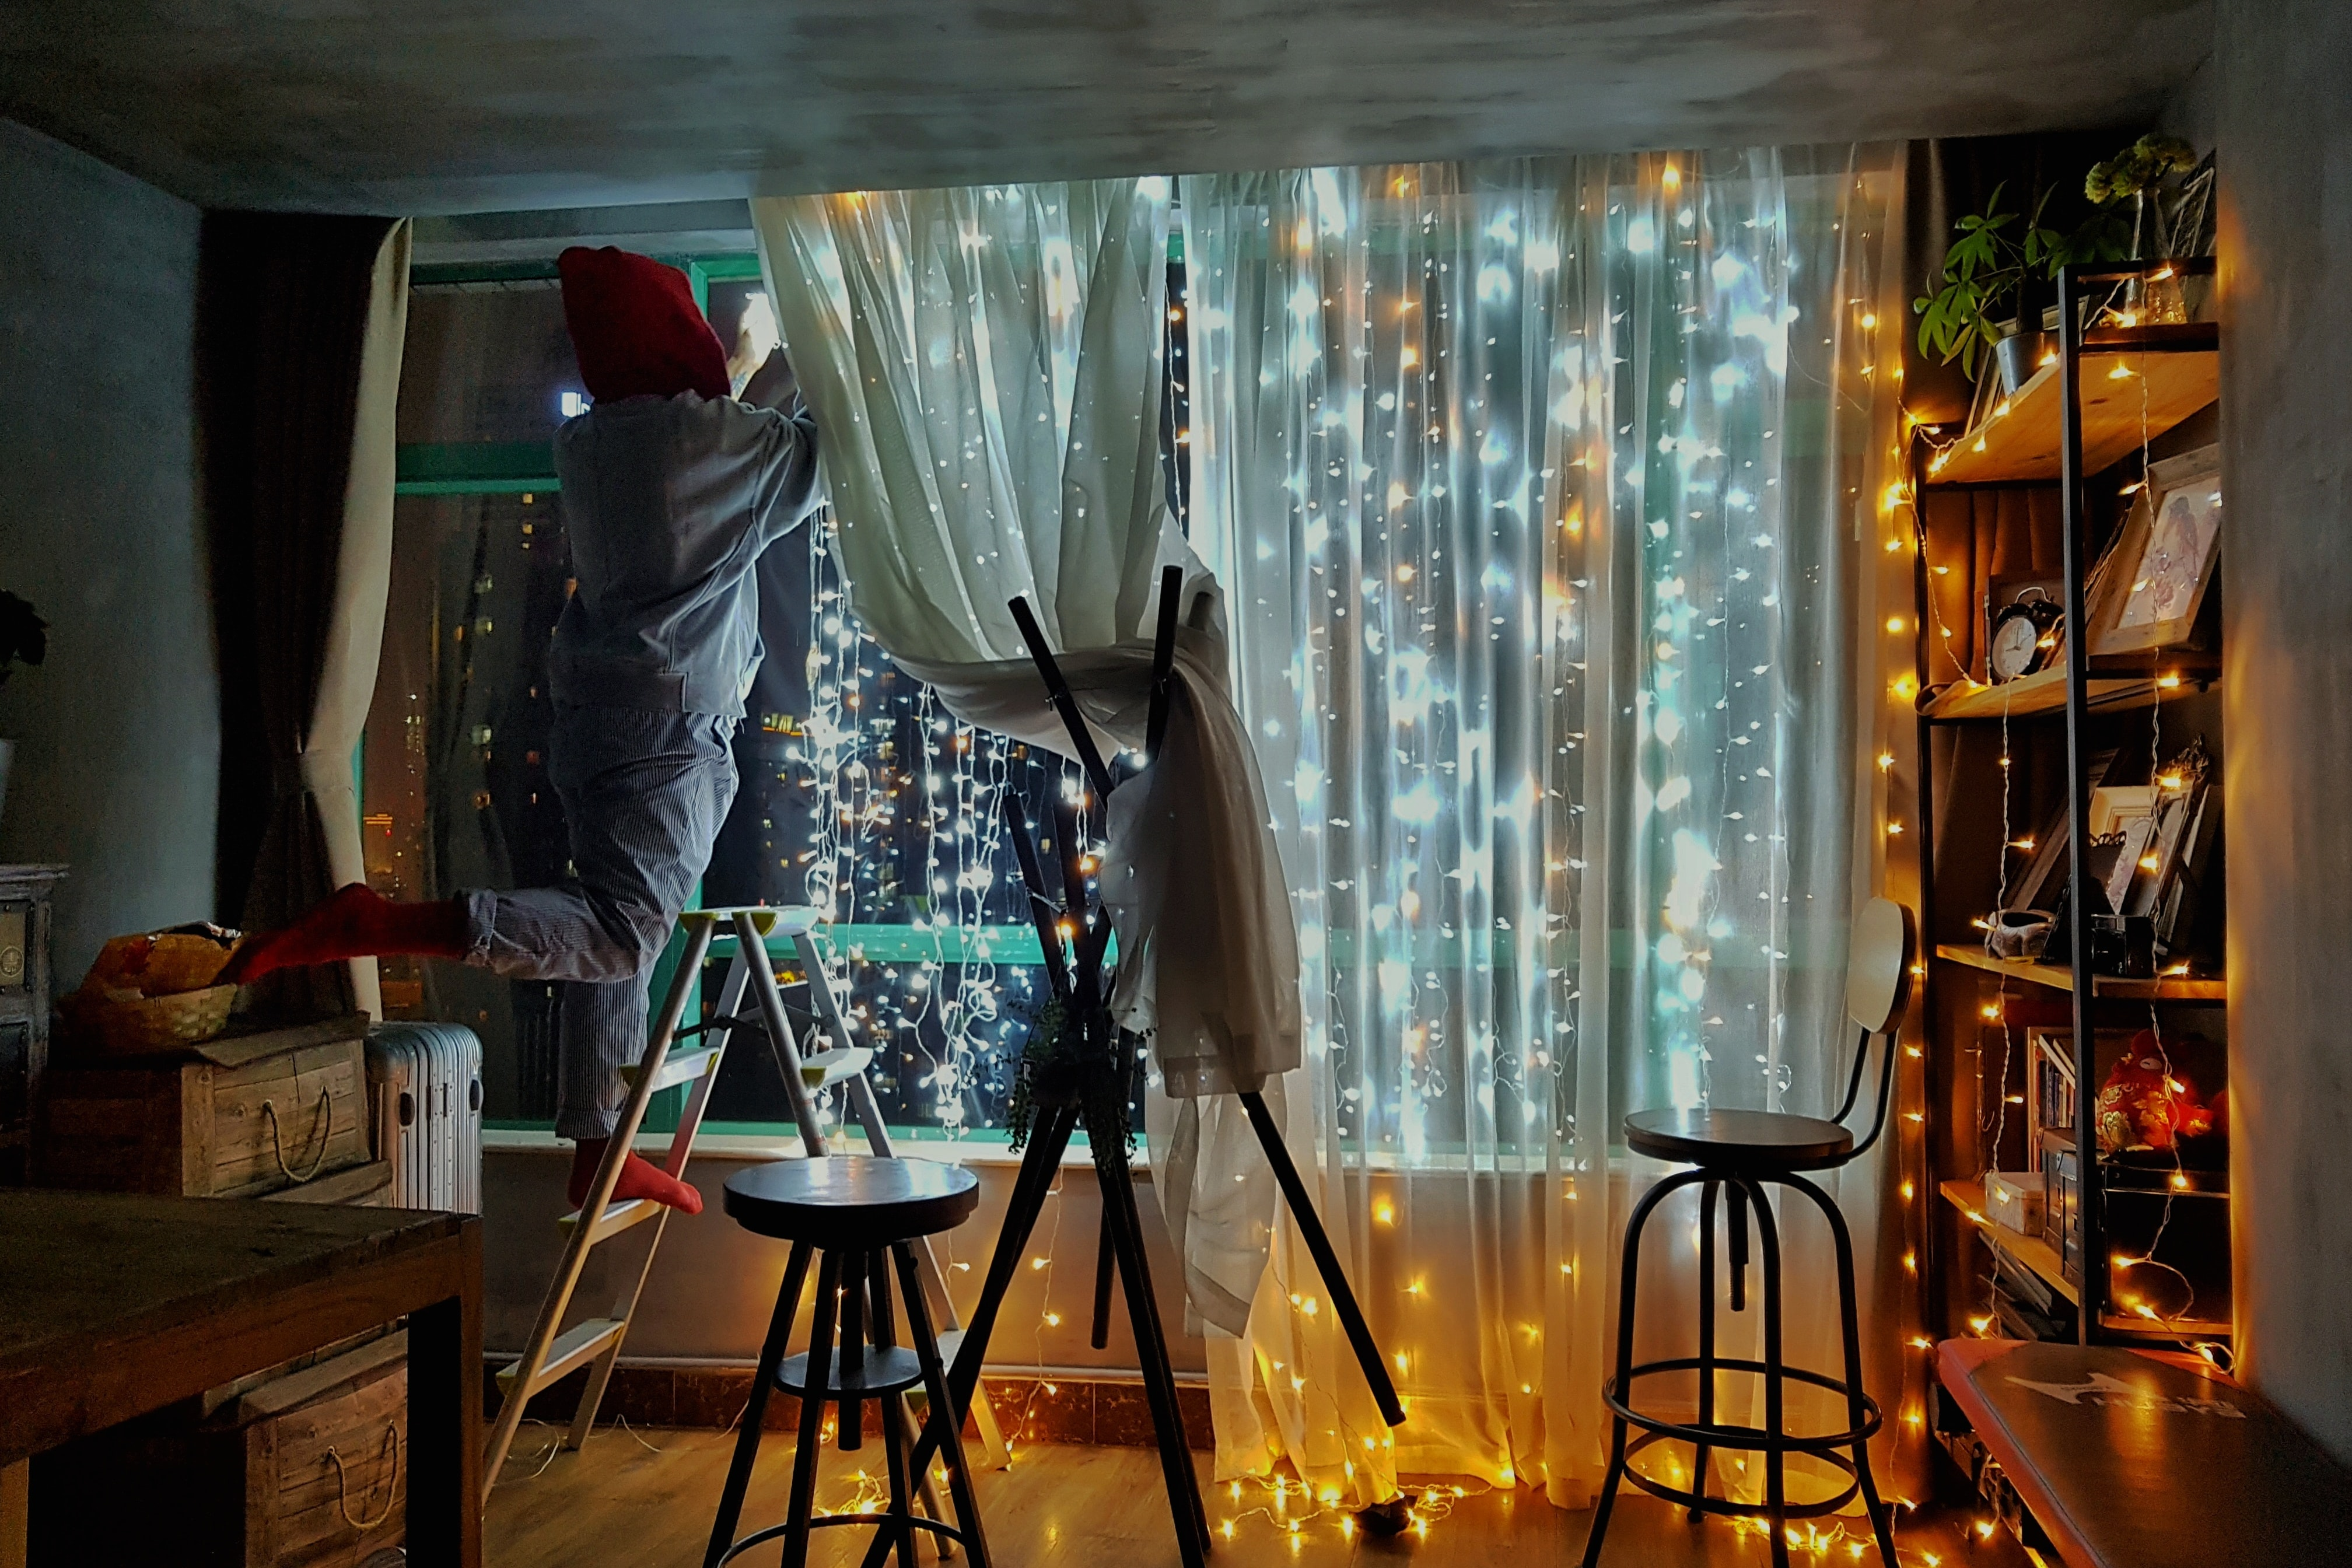 person standing on step ladder in front of string lights